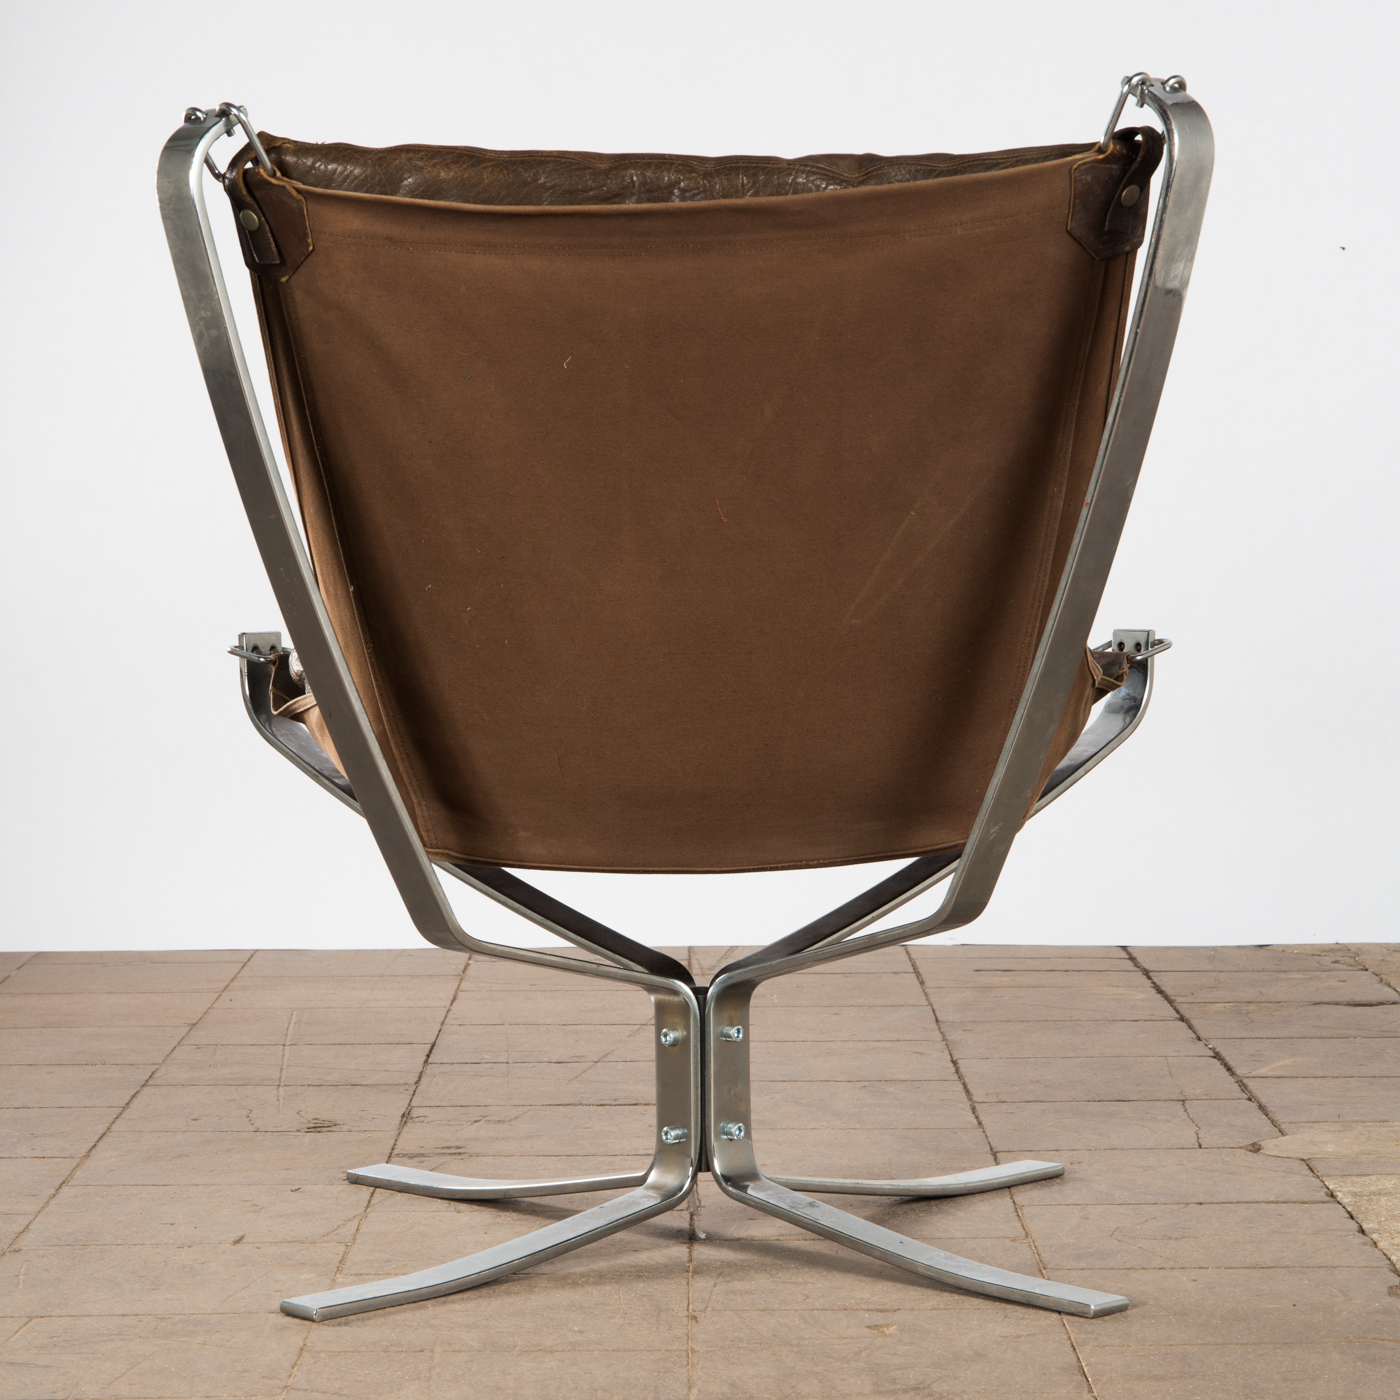 Sigurd Ressell, Vatne Møbler, two chairs lounge chairs